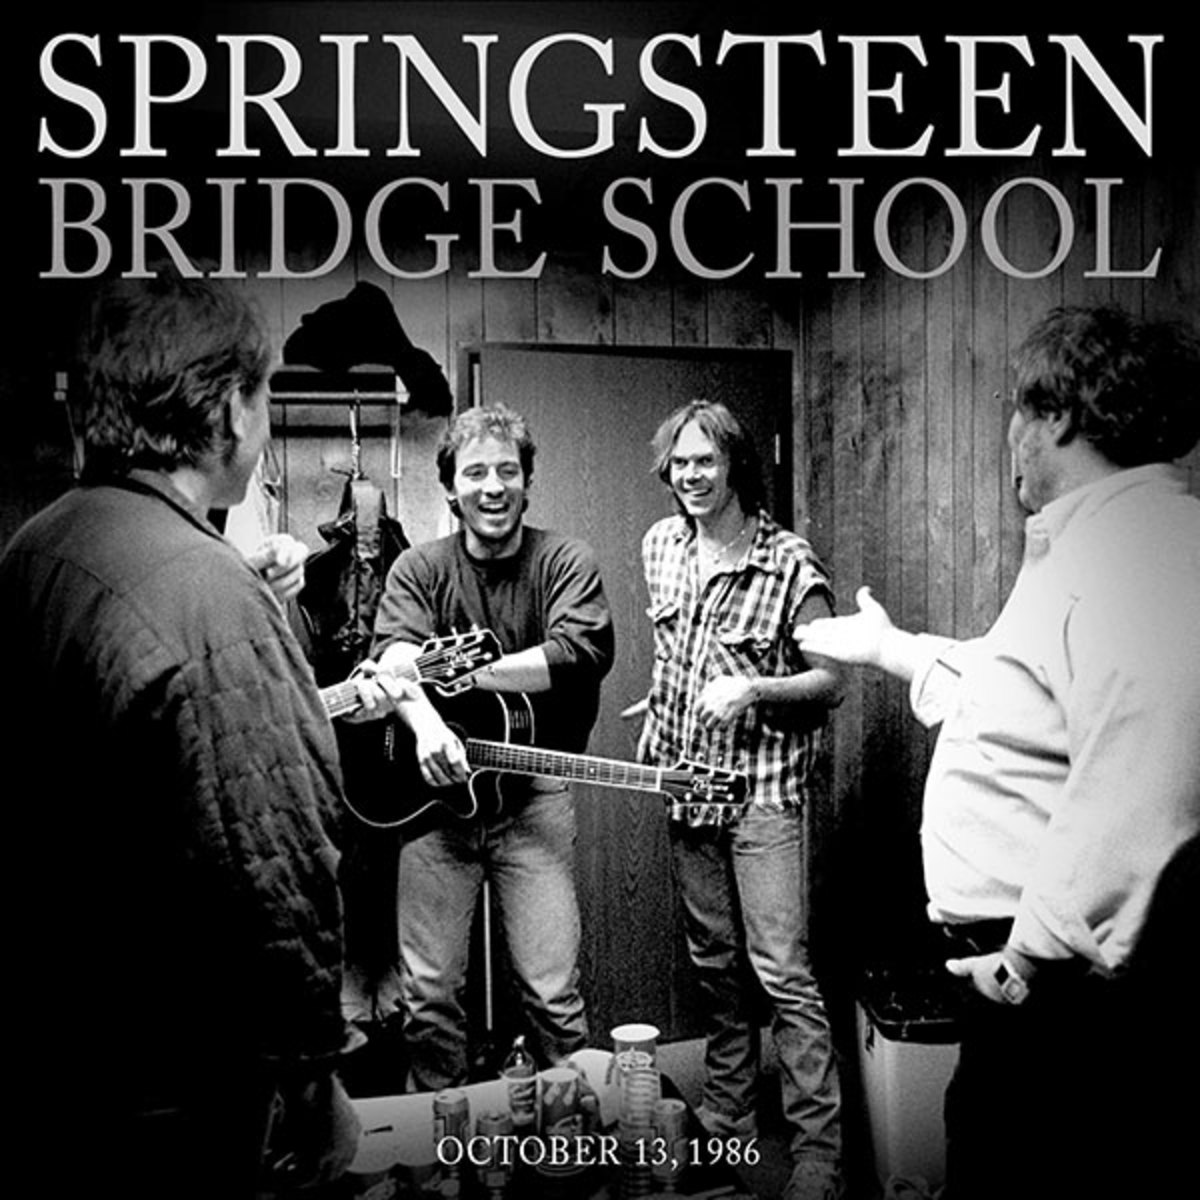 Bruce Springsteen Bridge School Benefit Concert 1986 Album Review